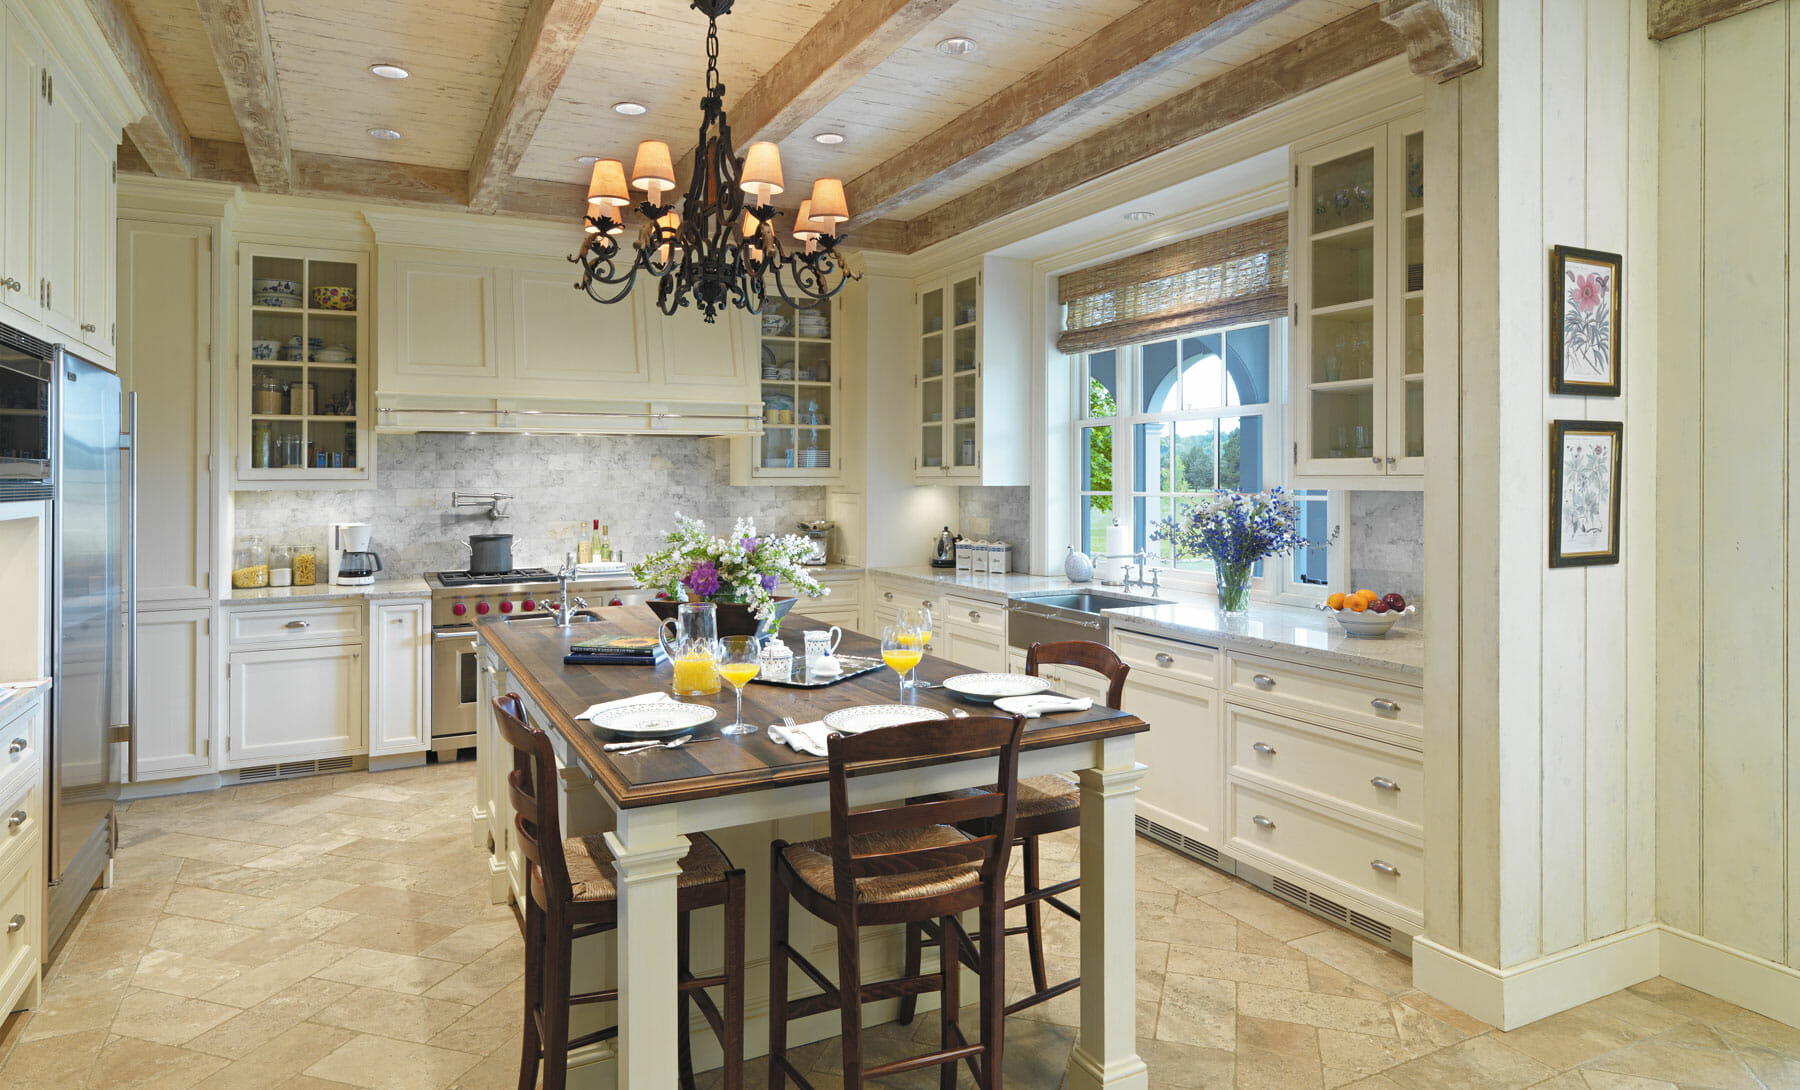 Charlottesville kitchen remodel with exposed wooden beams and open kitchen layout, built by GME Builders.